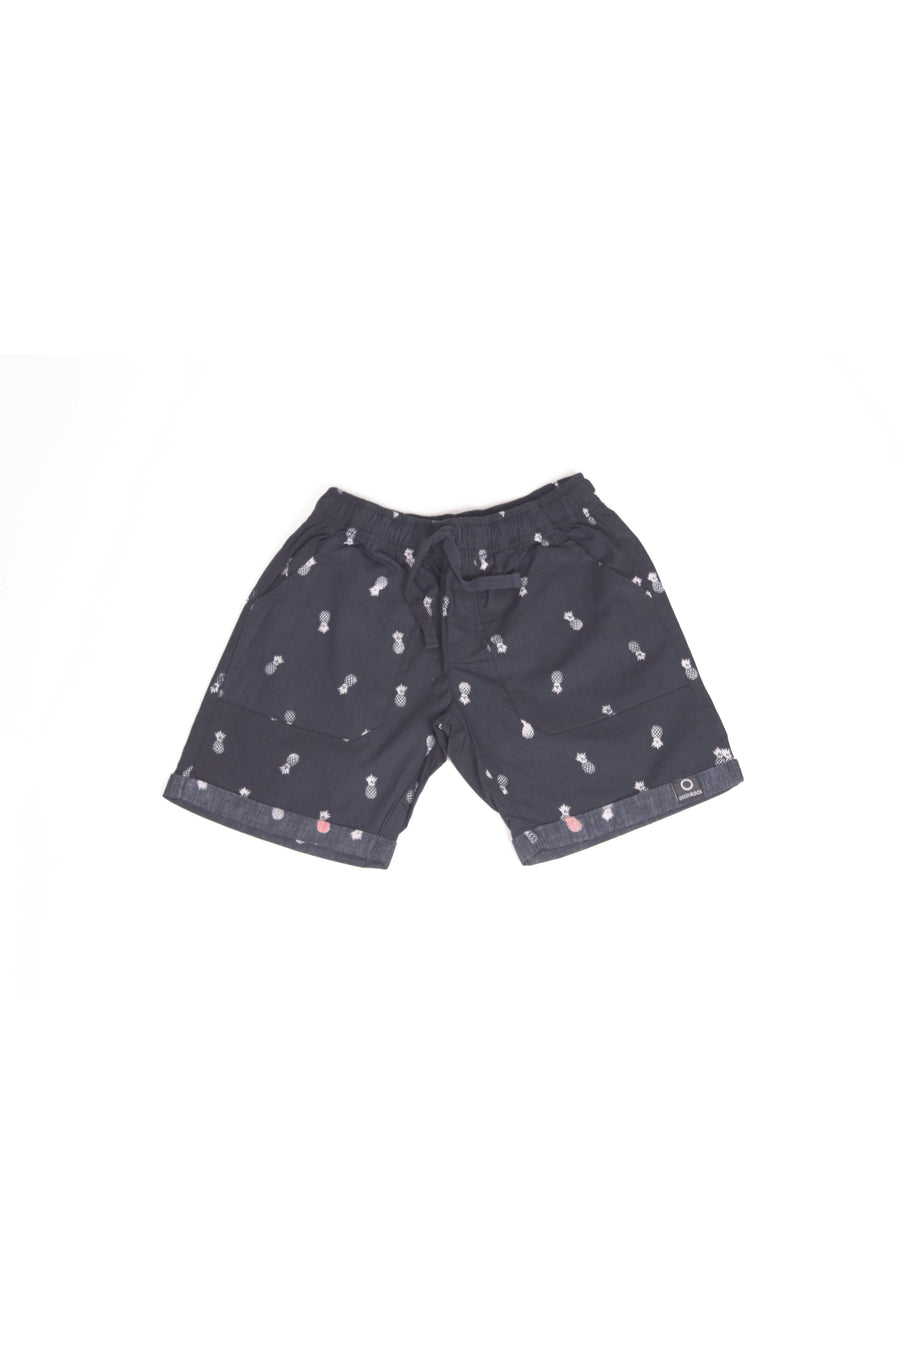 Short Kids Pineapple Navy